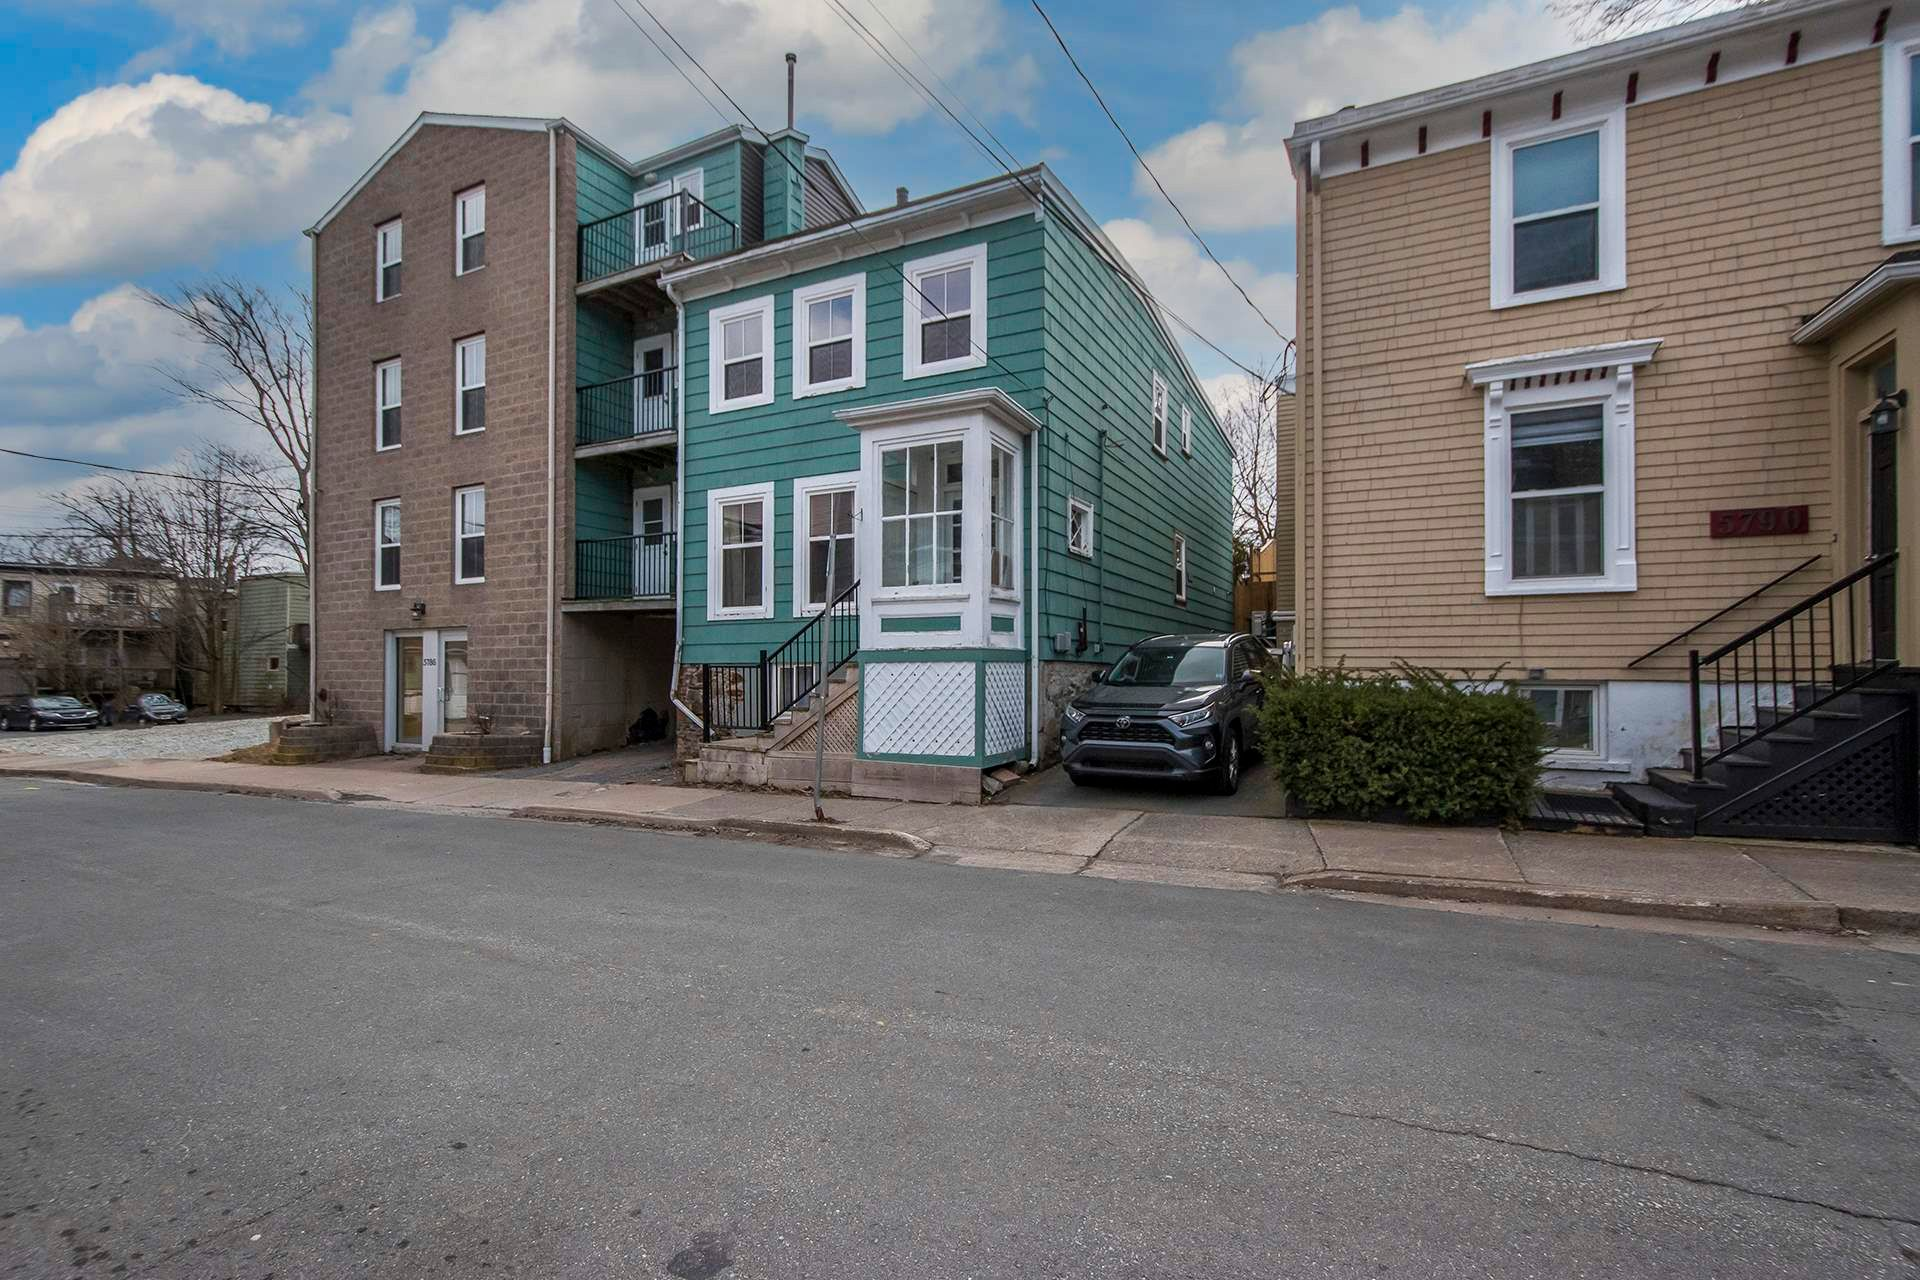 Main Photo: 5784-5786 Tower Terrace in Halifax: 2-Halifax South Multi-Family for sale (Halifax-Dartmouth)  : MLS®# 202108734